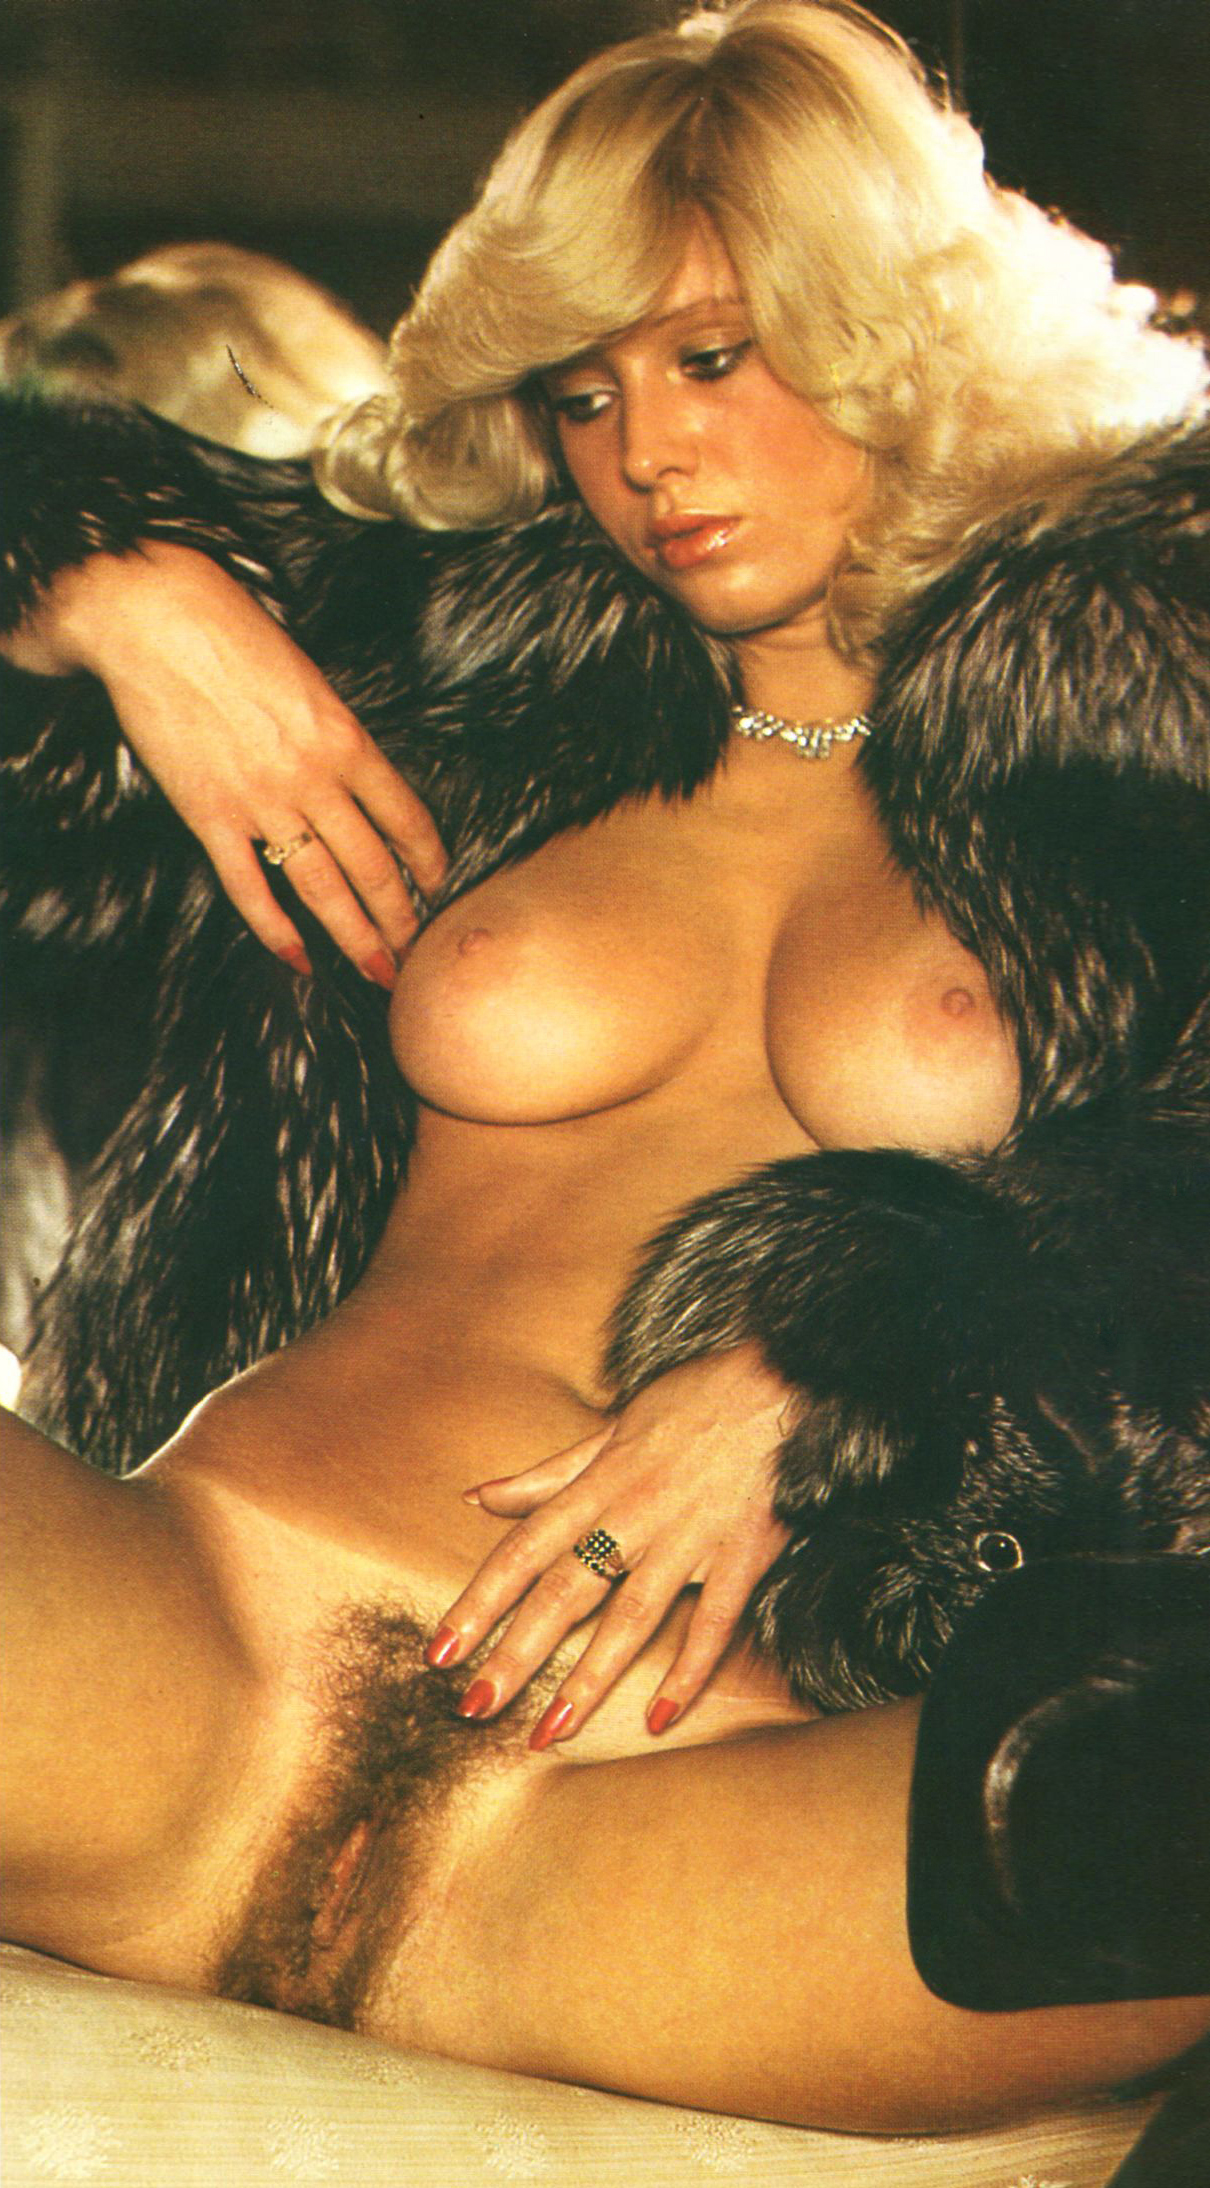 Porn magazine 1979 vintage remarkable, very